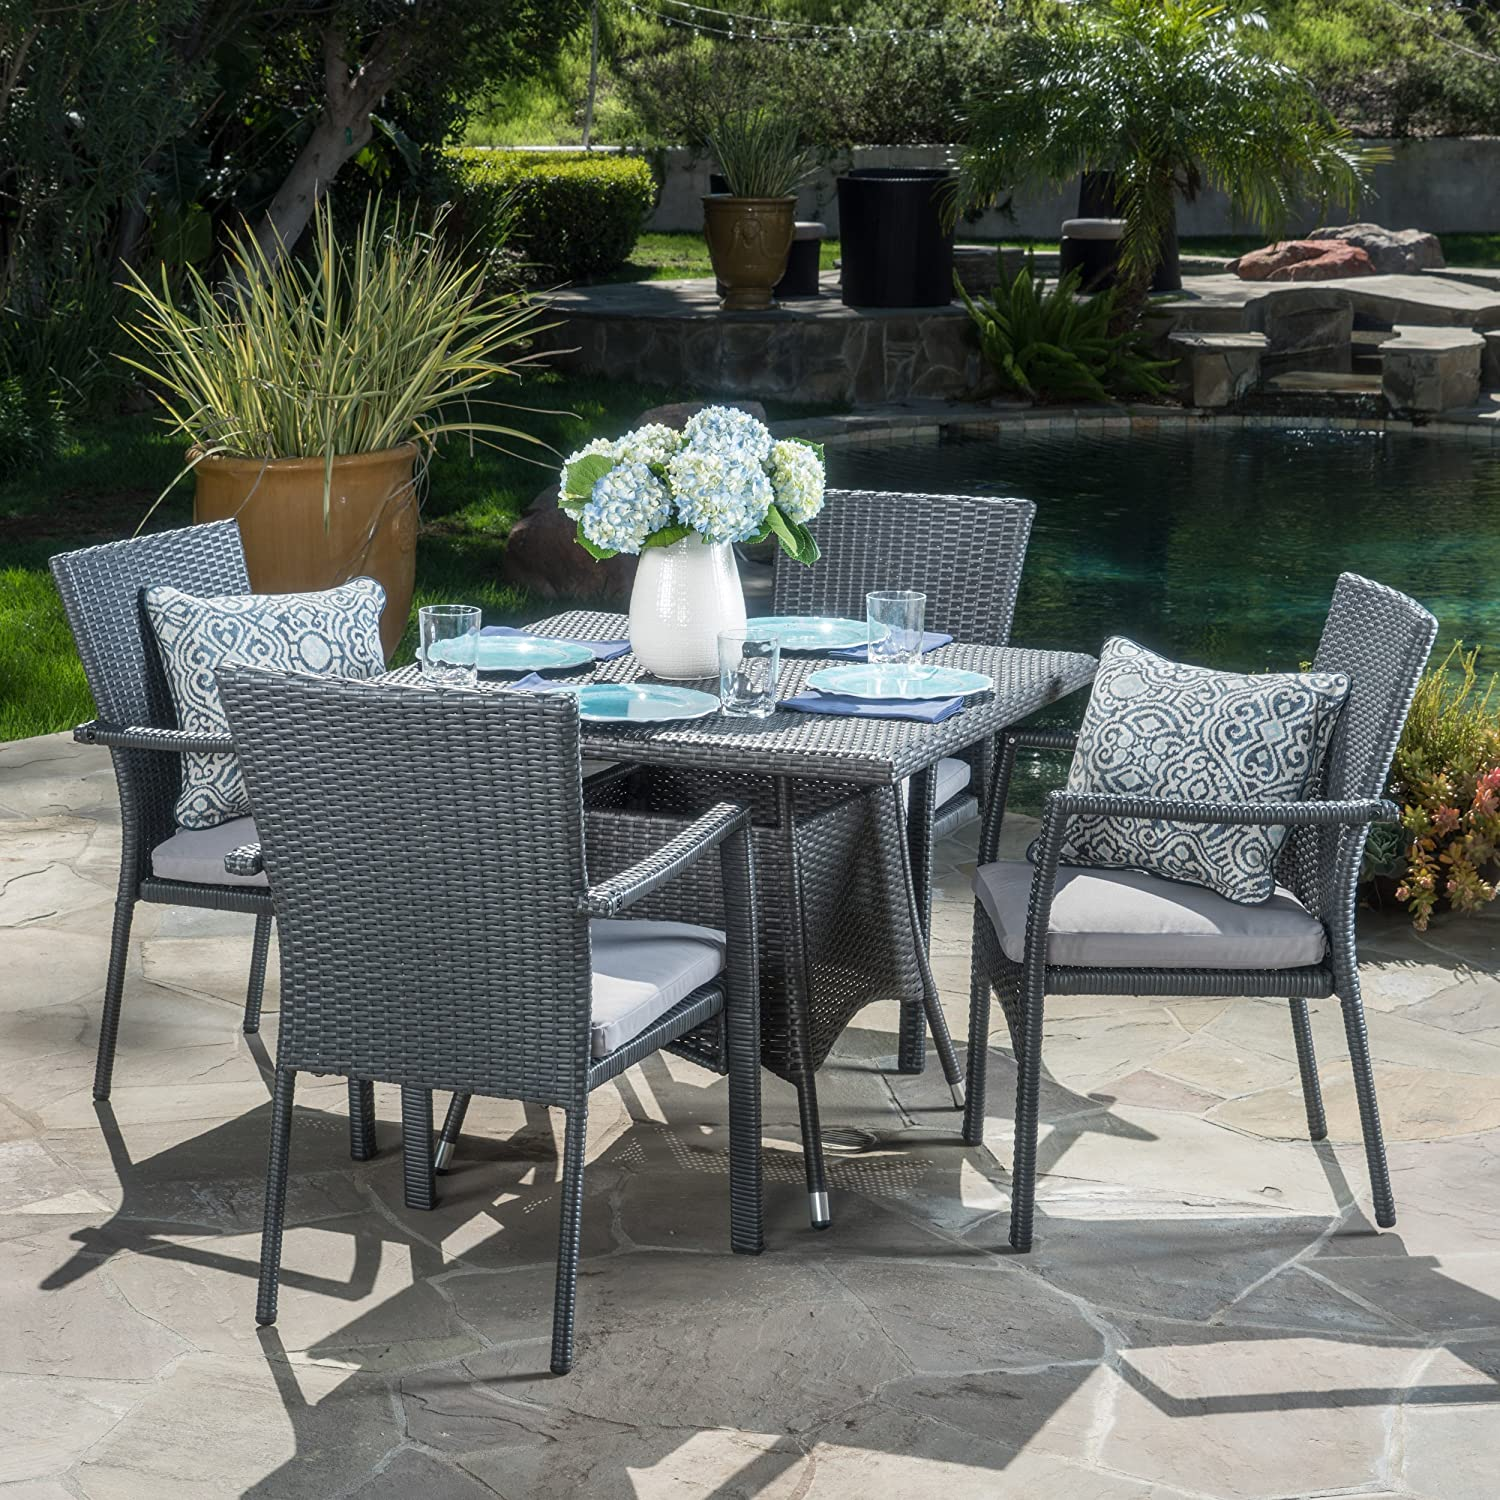 Cabela 5 Piece Wicker Outdoor Dining Set with Cushions Perfect for Patio in Grey